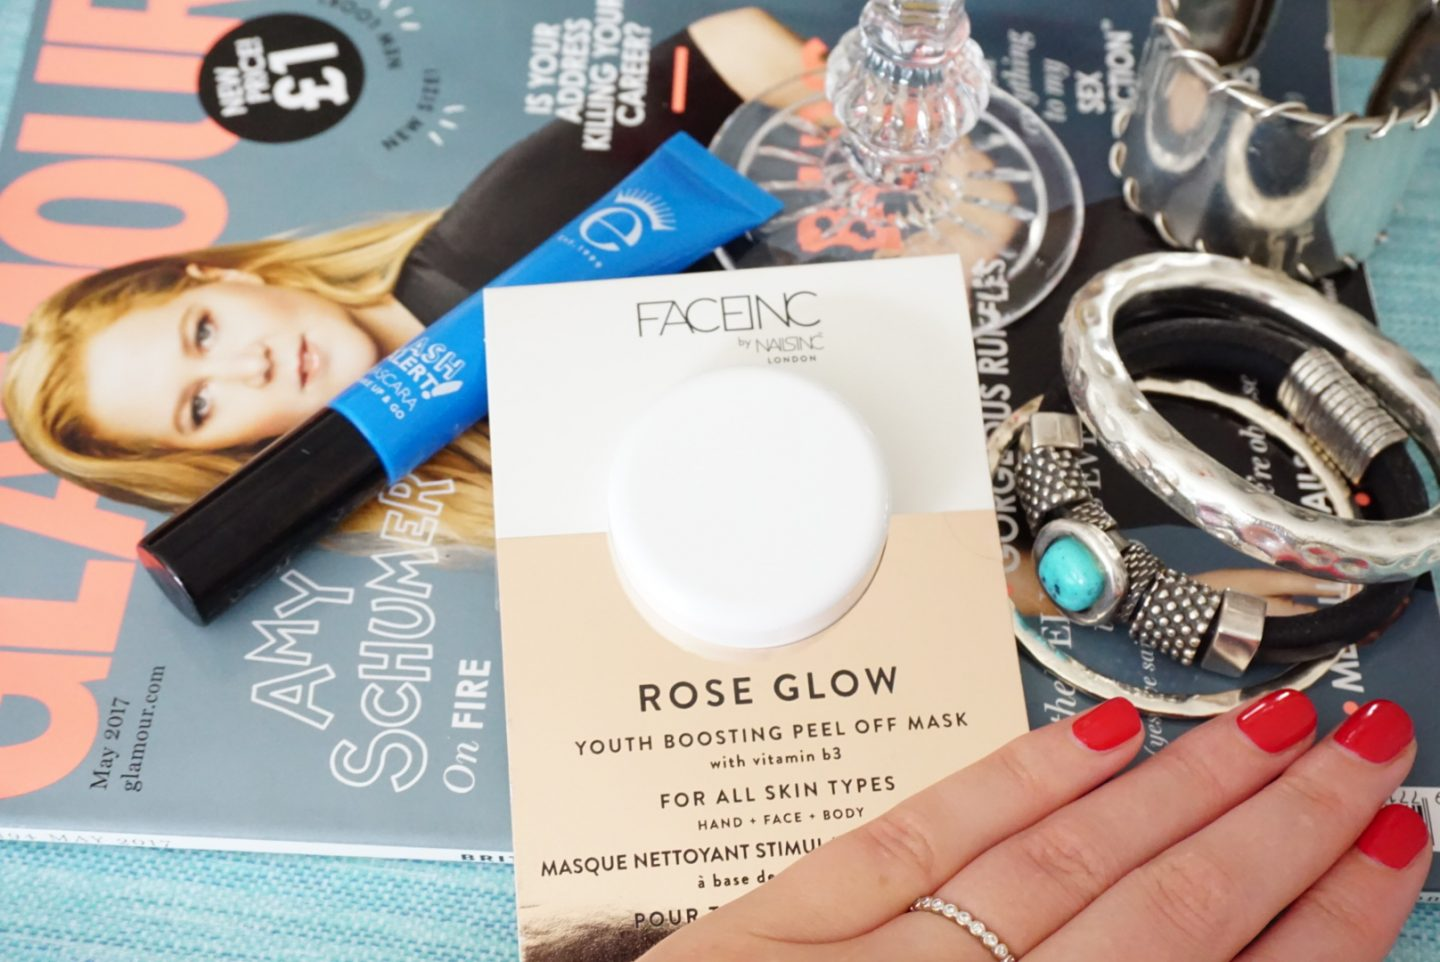 Rose Glow Peel Off Mask from Face Inc by Nails Inc